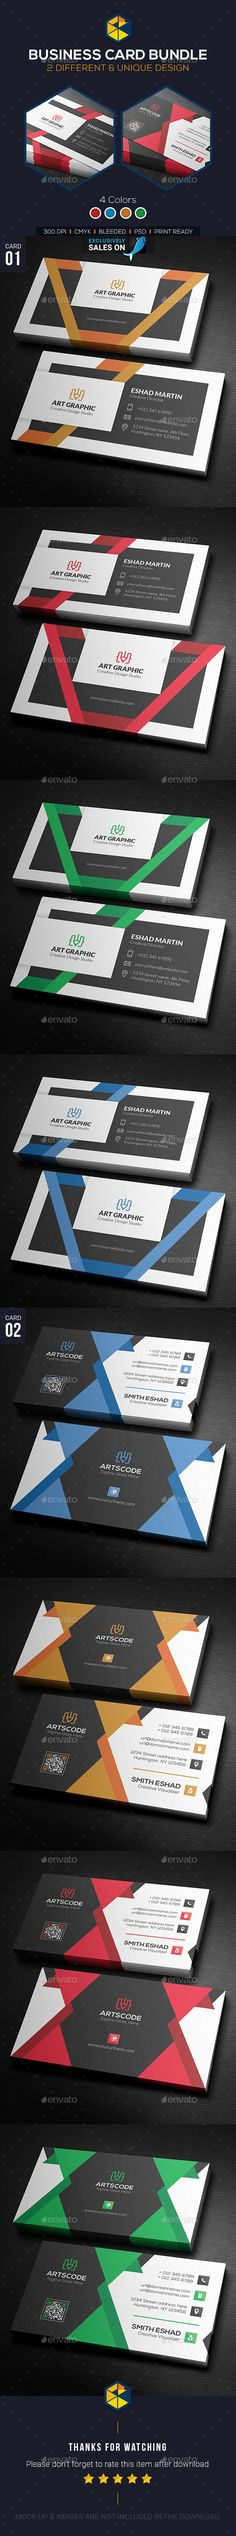 Design portfolio print business cards 32 Ideas for 2019 Corporate Business, Creative Business, Construction Branding, Car Accessories For Guys, Disney Cars Birthday, Cleaning Business Cards, Business Card Design Inspiration, Print Templates, Card Templates